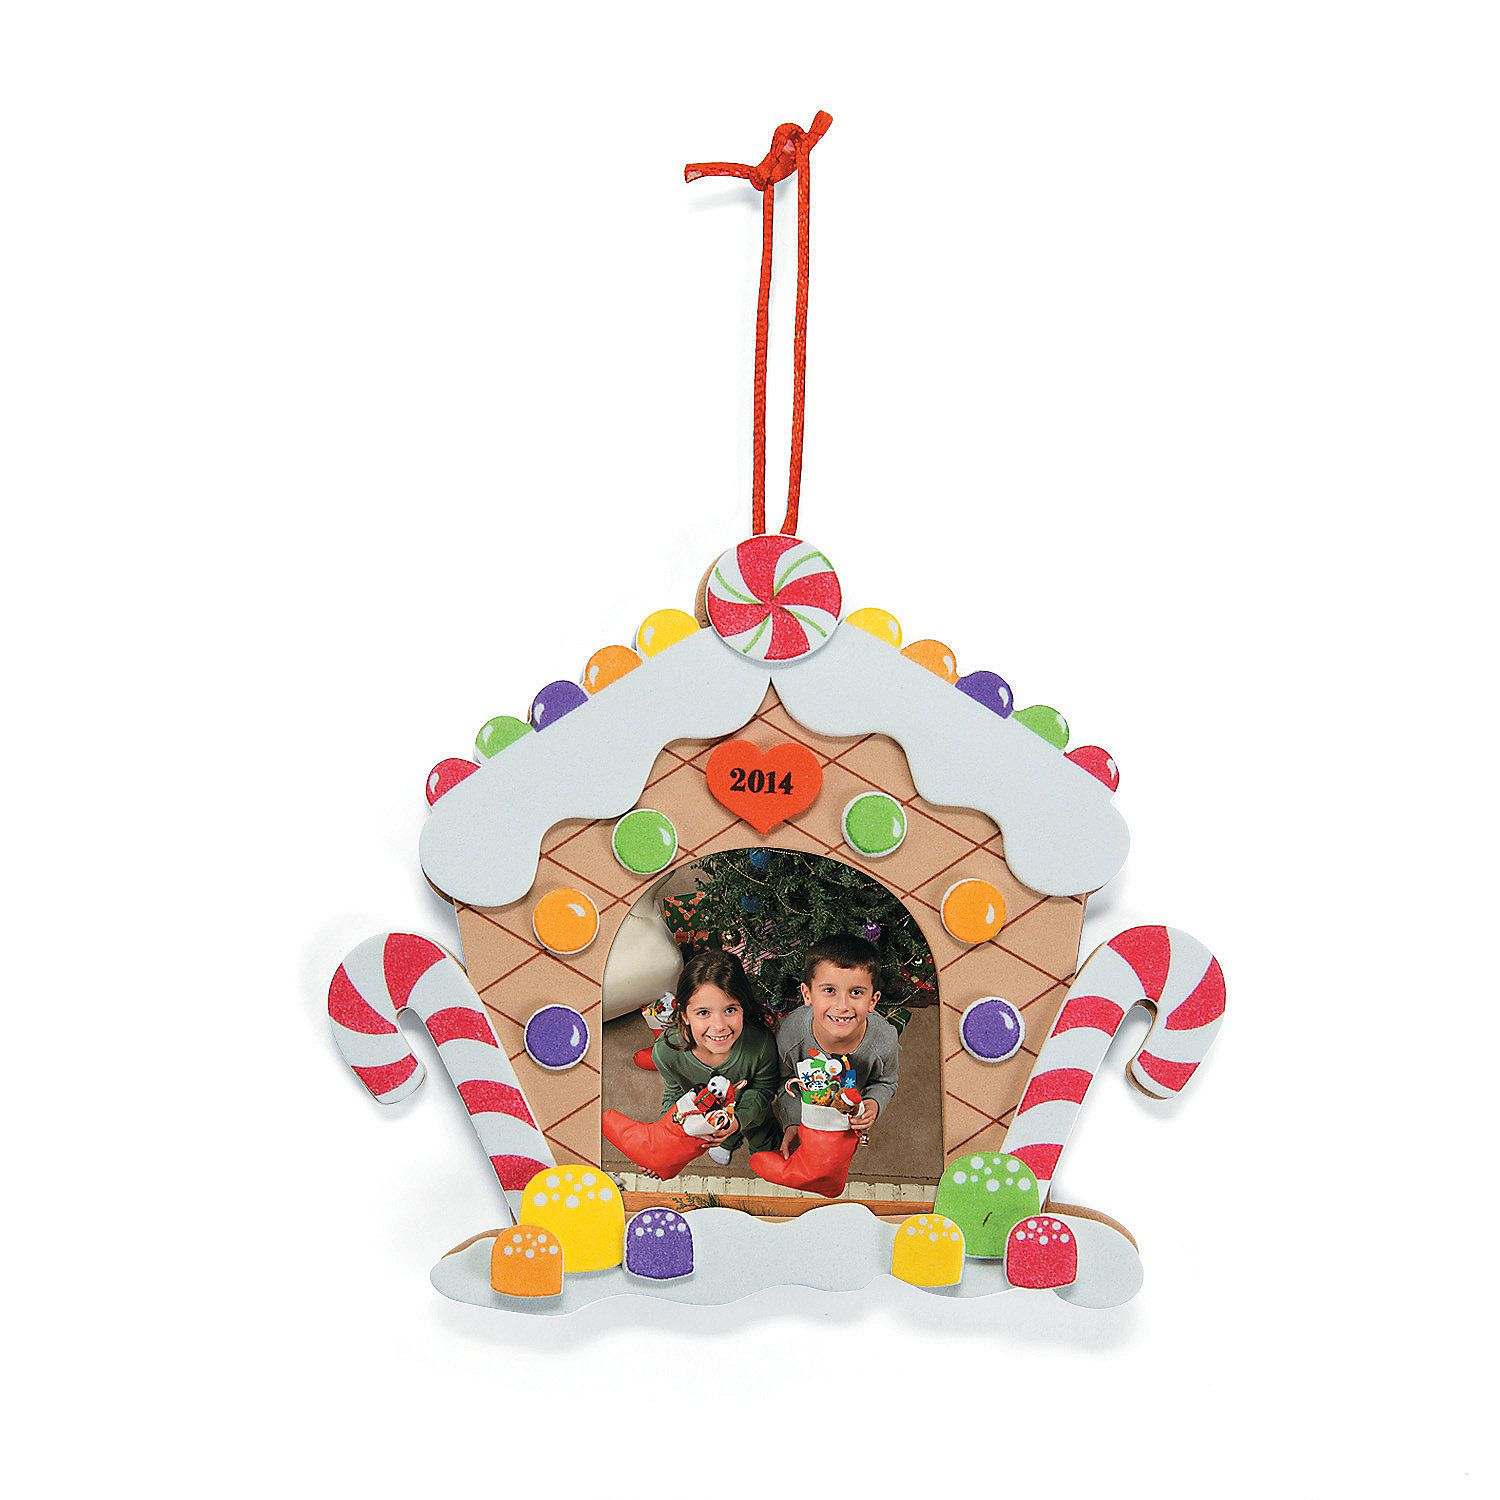 2014/2015 Gingerbread House Picture Frame Craft Kit